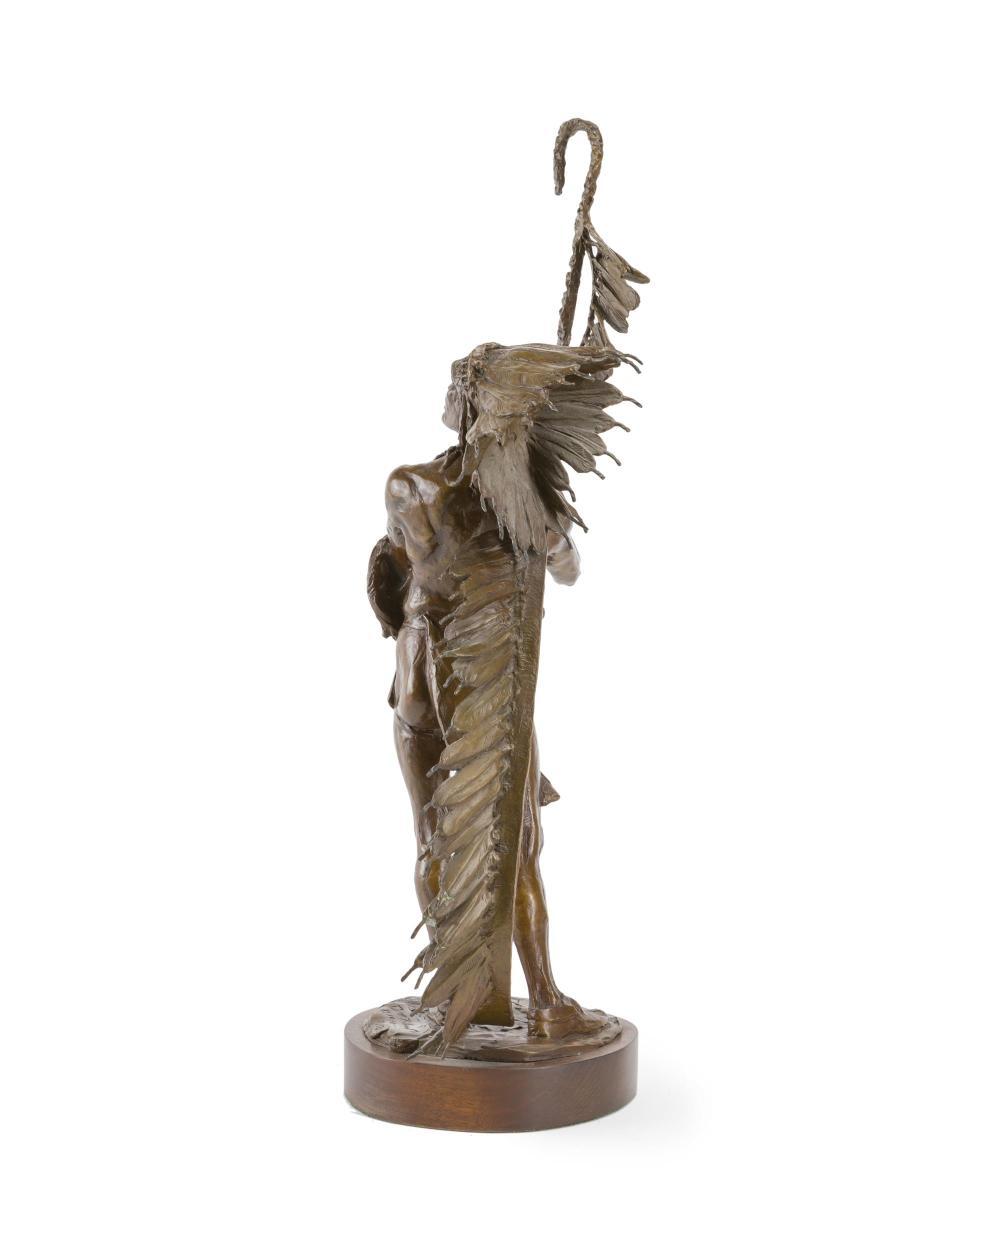 Peter Fillerup, (b. 1953 Wyoming), Standing American Indian, 1990, Patinated bronze on wood plinth, 29